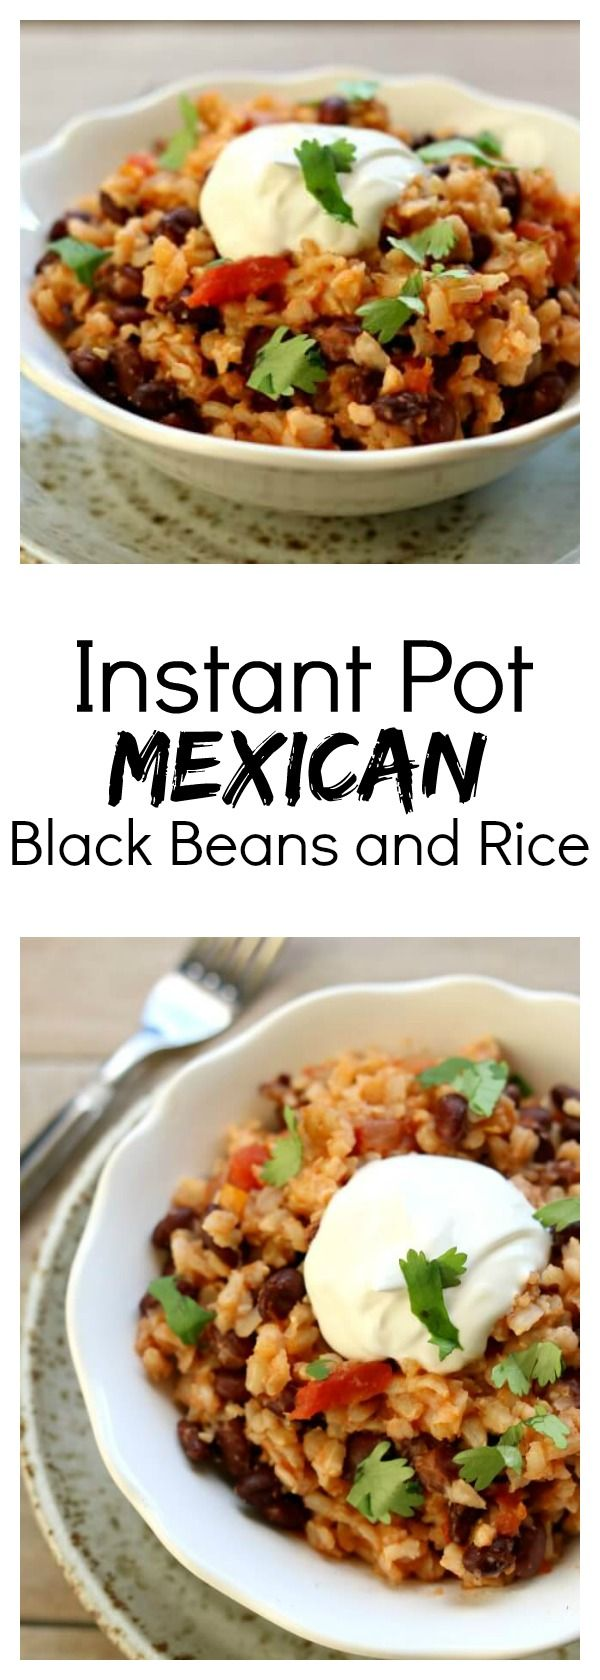 Instant Pot Mexican Black Beans and Rice–the easiest and tastiest rice ever! Brown rice is cooked in flavorful salsa with garlic salt, a bay leaf and cumin. Canned black beans make this recipe very convenient. And my favorite part is a squeeze of lime juice and a dollop of sour cream on top. Make this as a meal or as a side dish.